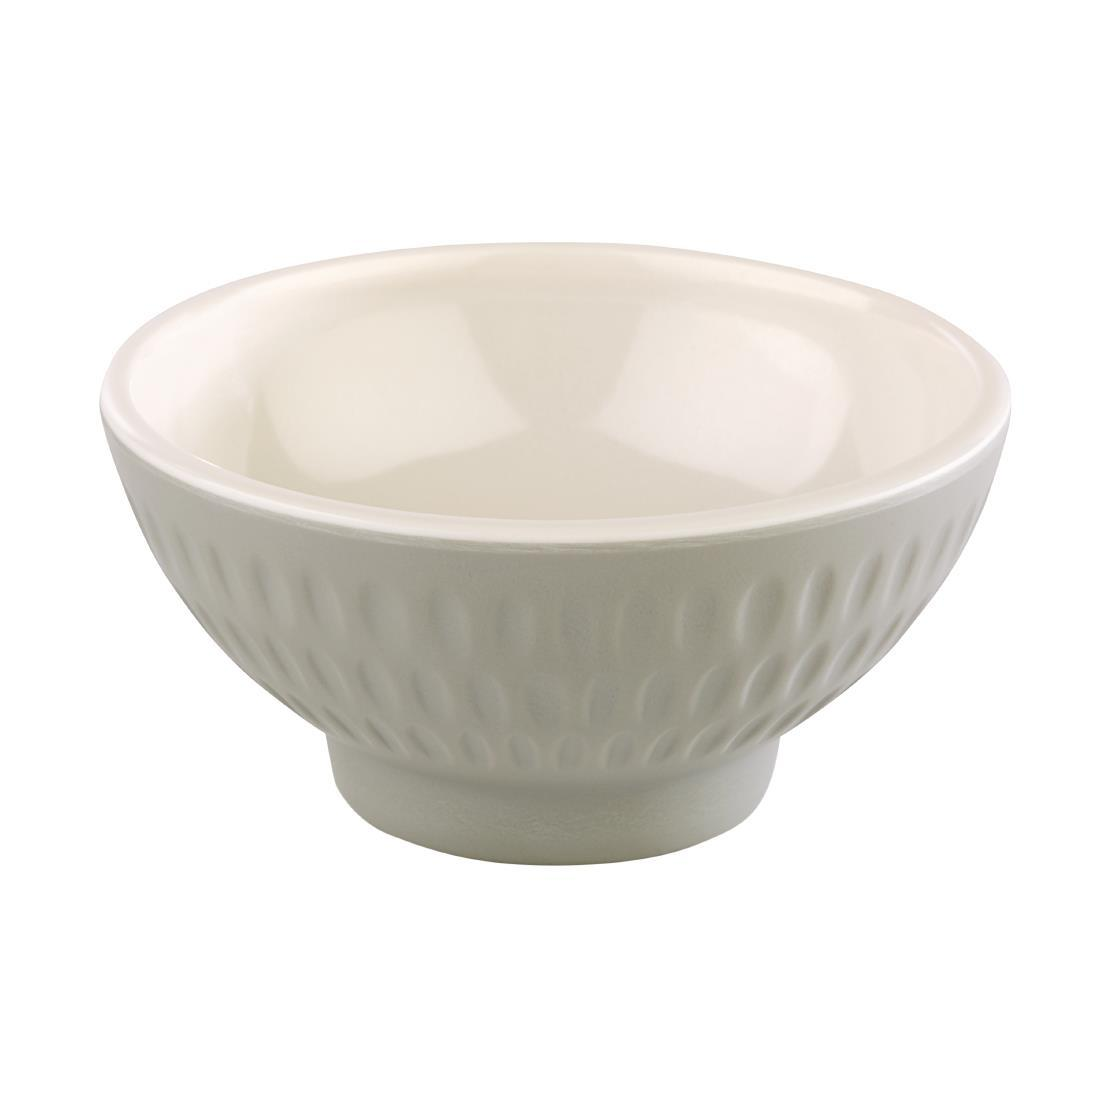 DW005 - APS Asia+ Bowl Cream 200mm - Each - DW005